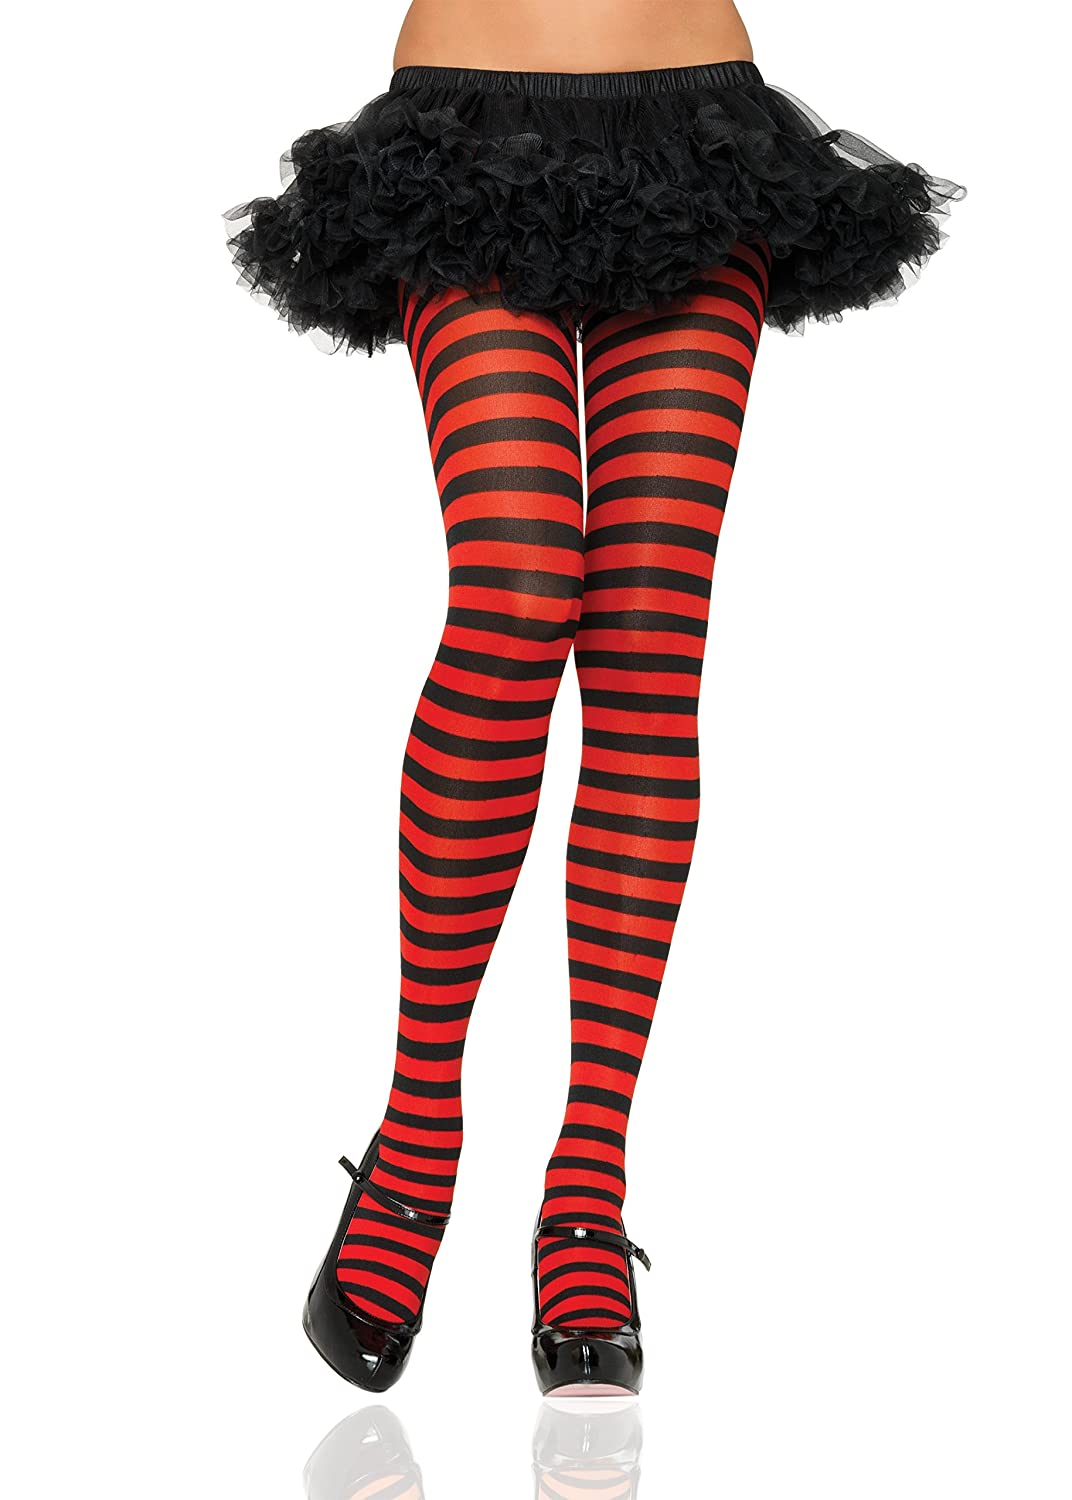 5383cd21587a7 Leg Avenue, Plus Size Stripe Tights Plus Size, Black/ Red: Amazon.co.uk:  Toys & Games